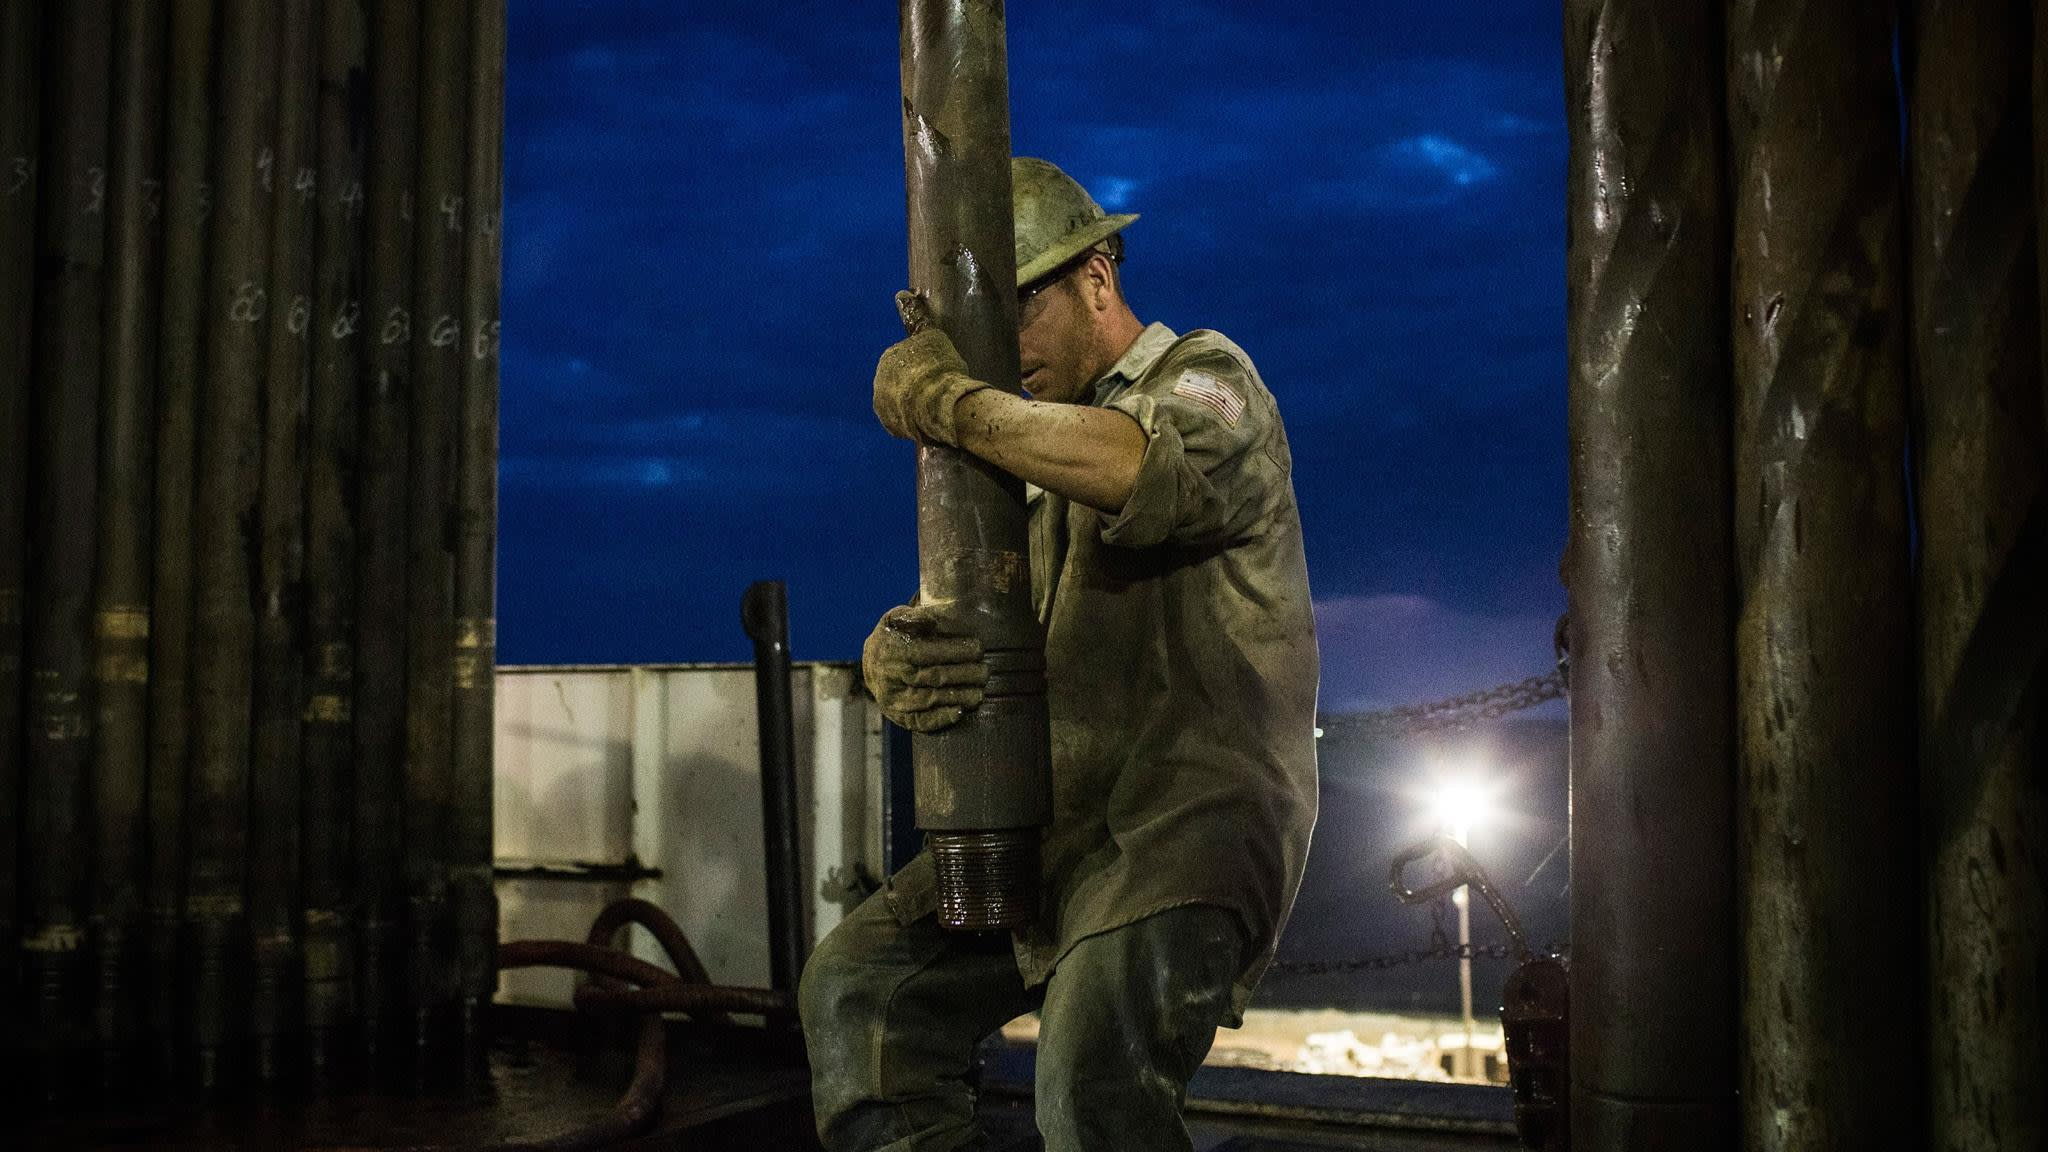 Lower oil prices cut two ways for US economy | Financial Times